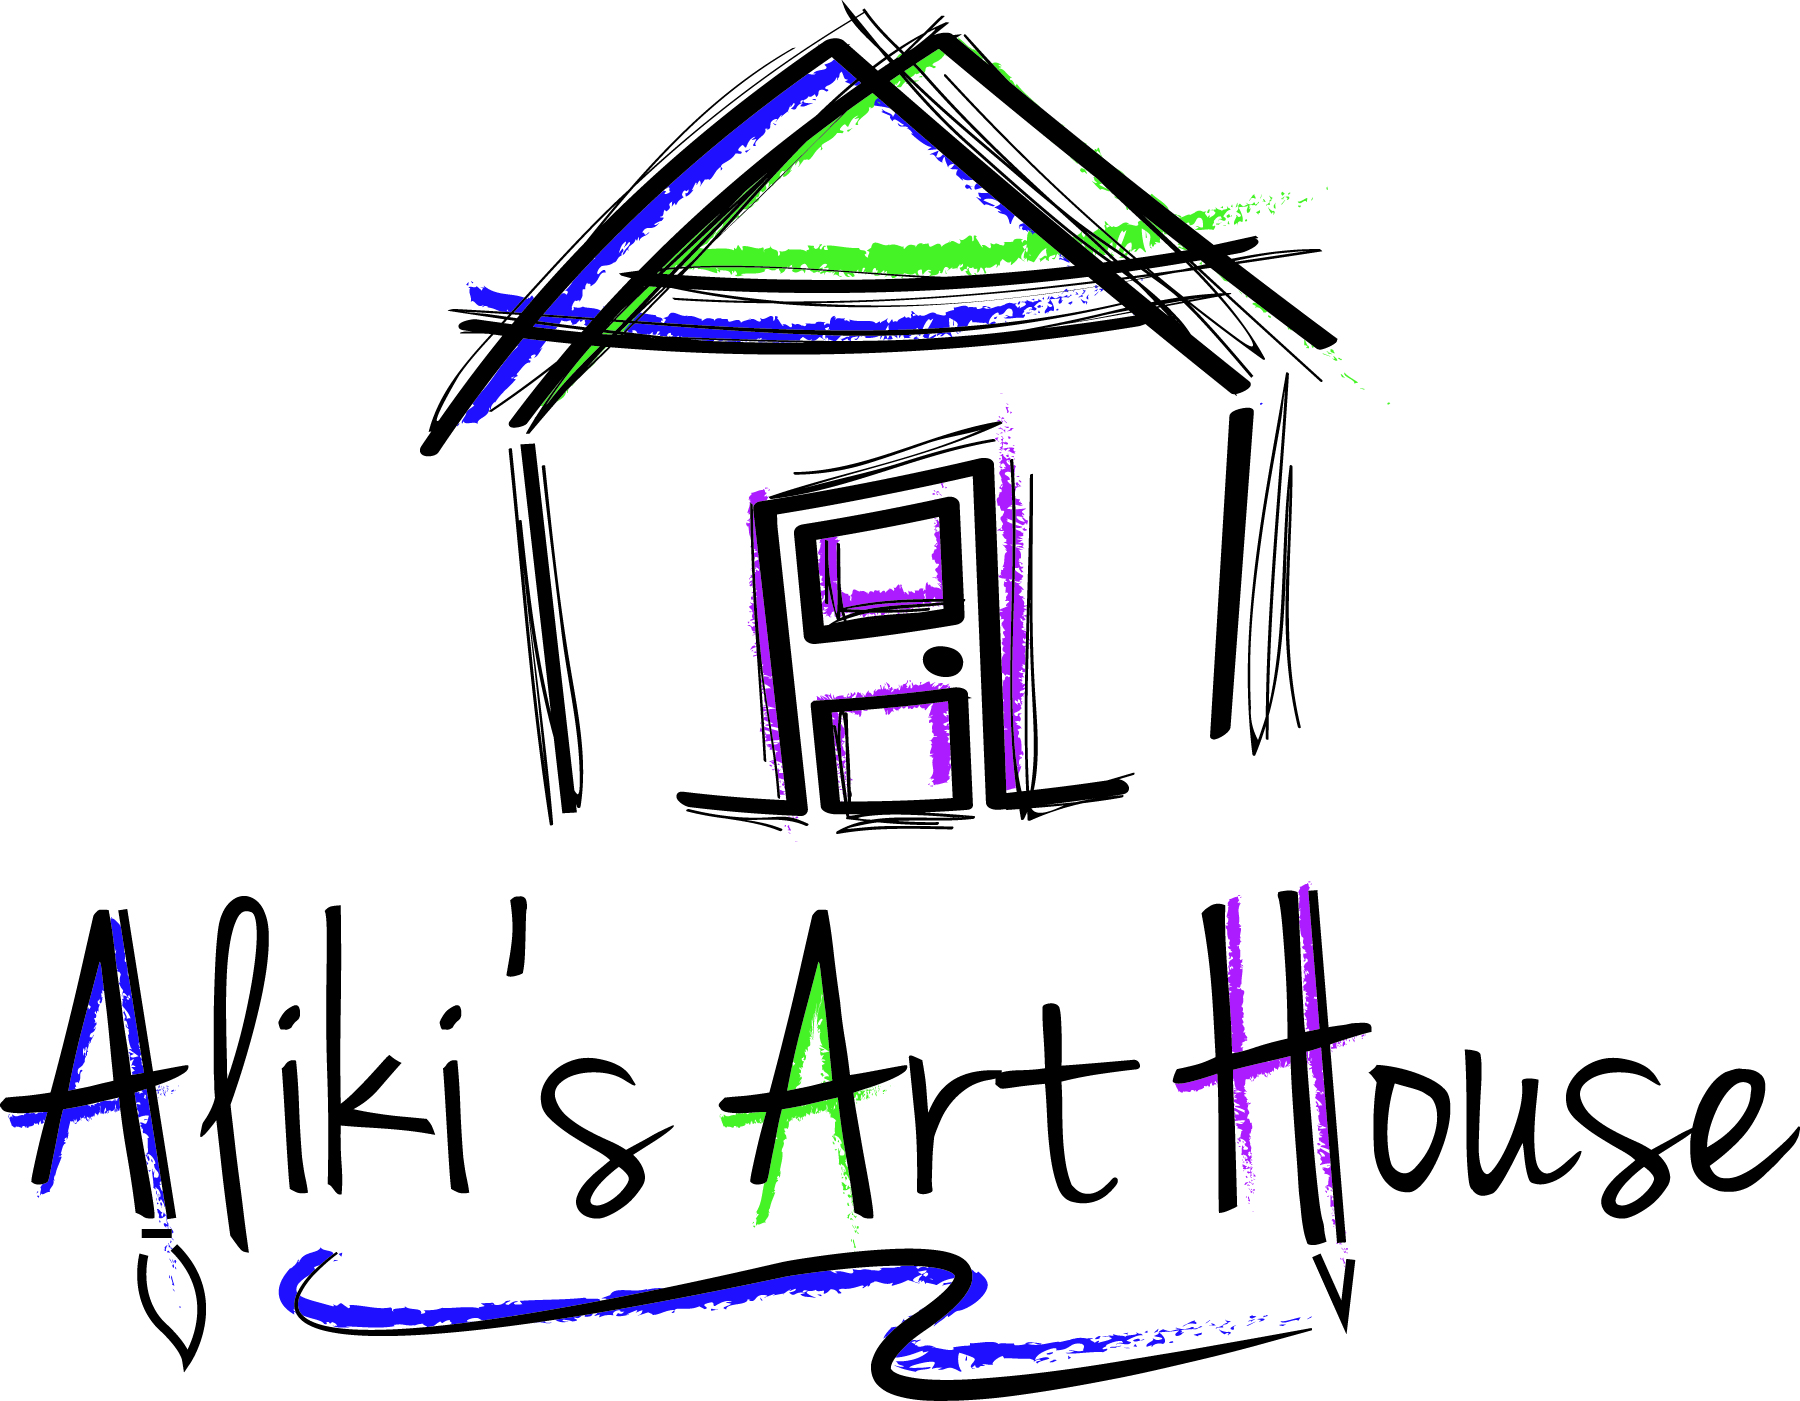 cb003c92b Aliki's Art House - a space and place where fun begins! Aliki's proven  step-by-step system teaches students of all ages how to draw in a variety  of styles ...